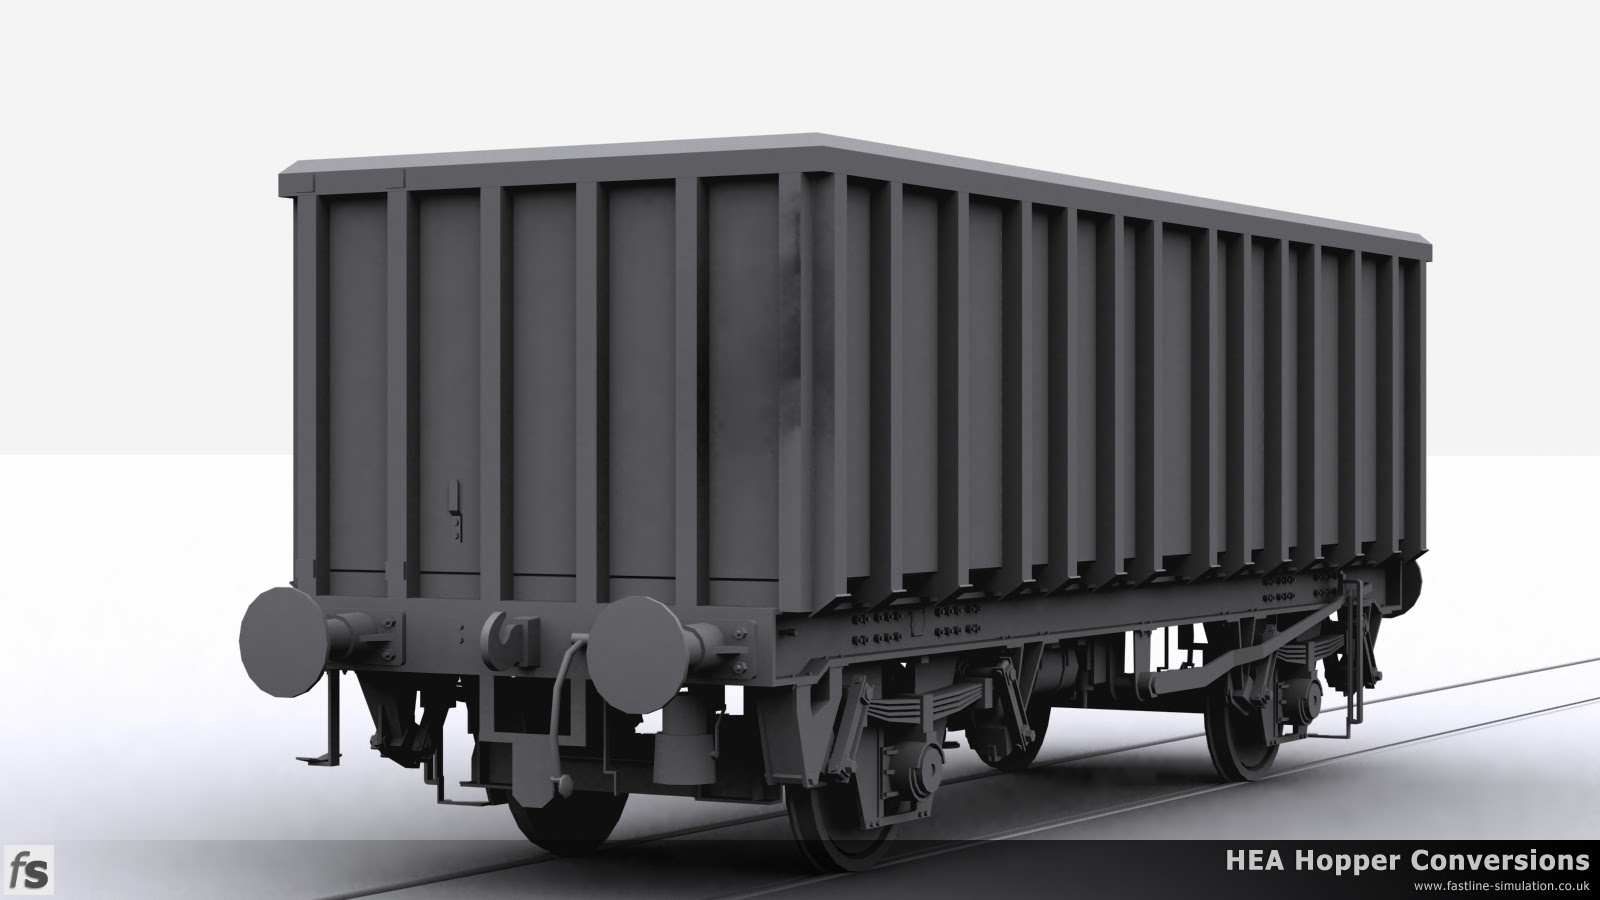 Fastline Simulation - HEA Conversions: A shape for a later version of the MEA box wagon converted from an HEA hopper with the end ladder removed and angled corners to the side ribs.